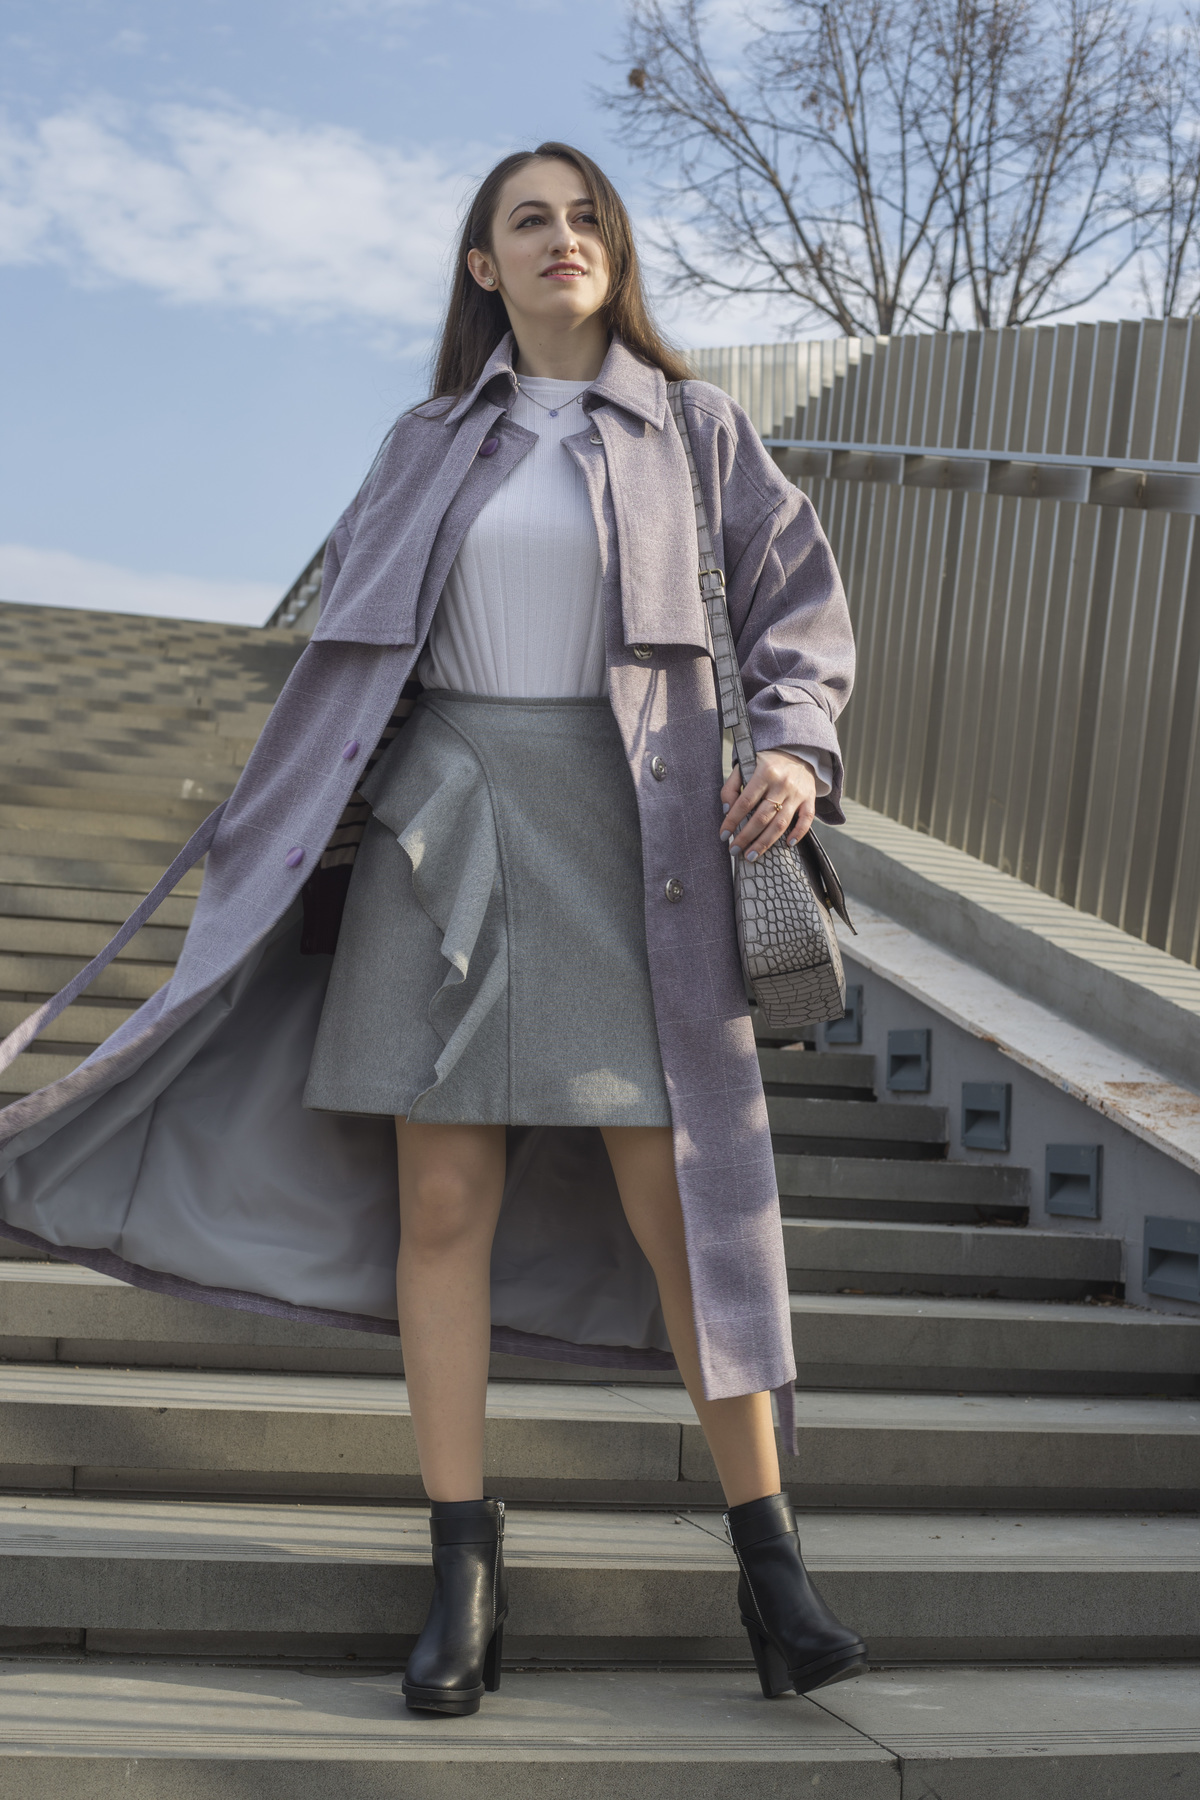 I marked this autumn with a new trench coat I recently made. Go to www.dilekaspires.com to see it and read about how I learned to make my own clothes.